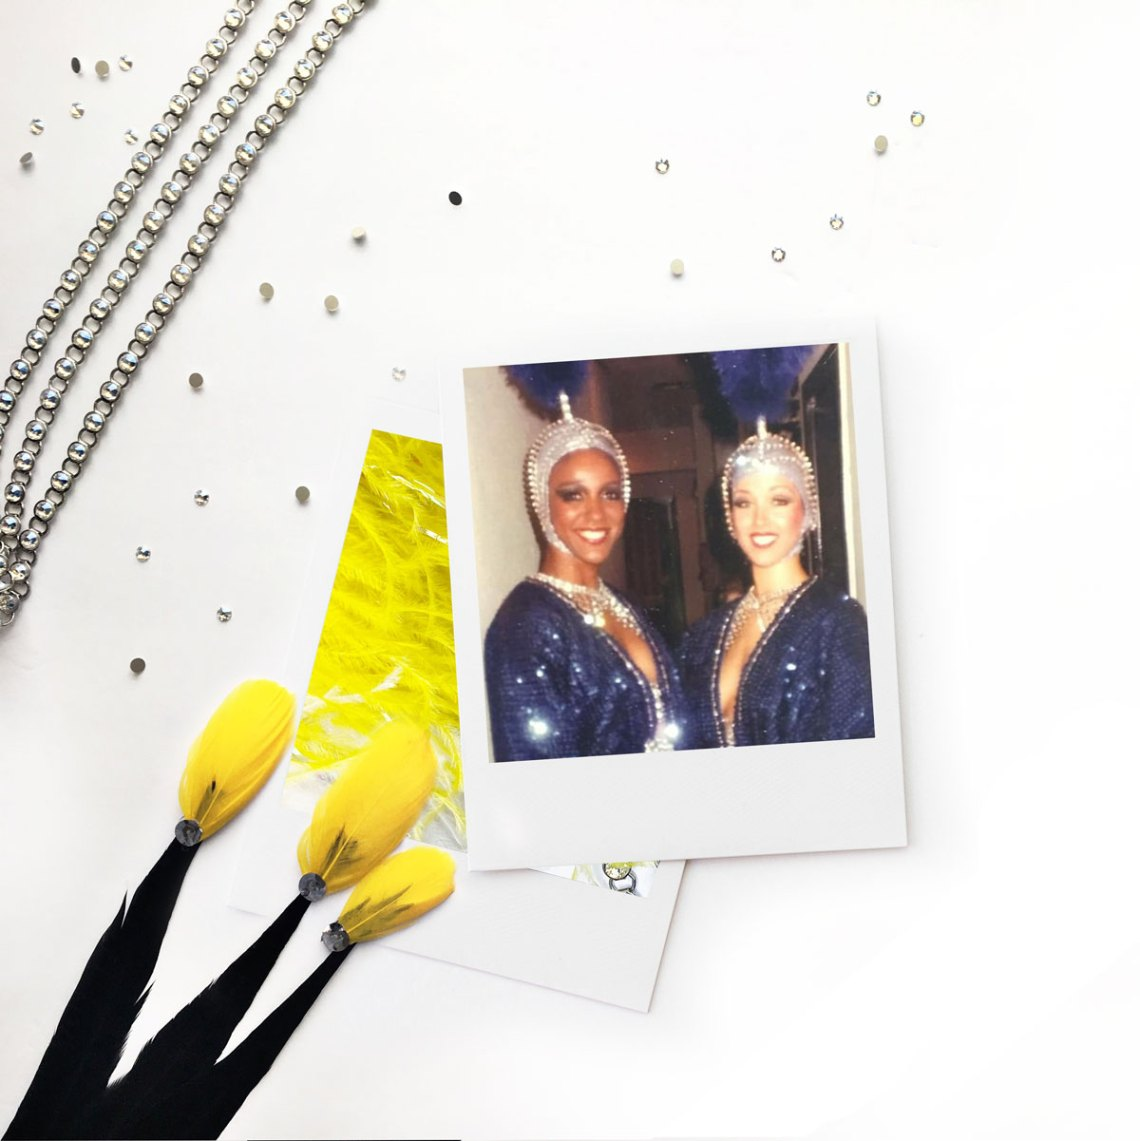 Showgirl's Life podcast | ep 052 How being a Bluebell dancer sparked the time in her life when she really started living featuring Brenda Barrett